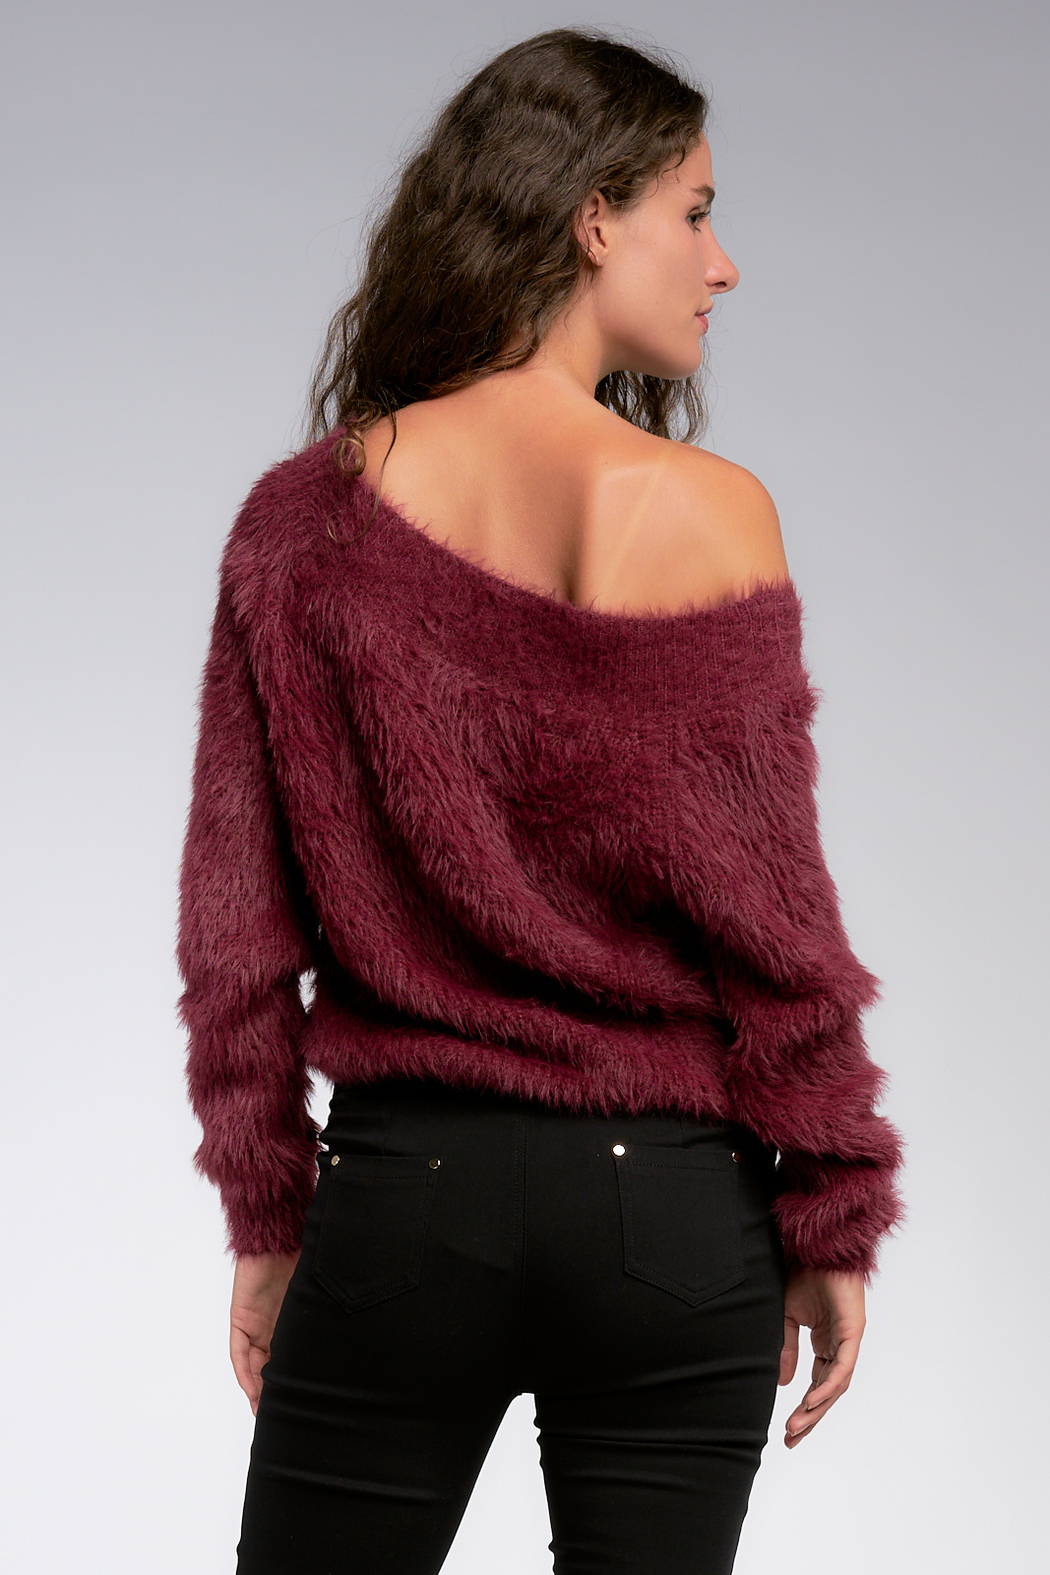 Elan Wine and Dine off the Shoulder Fuzzy Sweater - Side Cropped Image